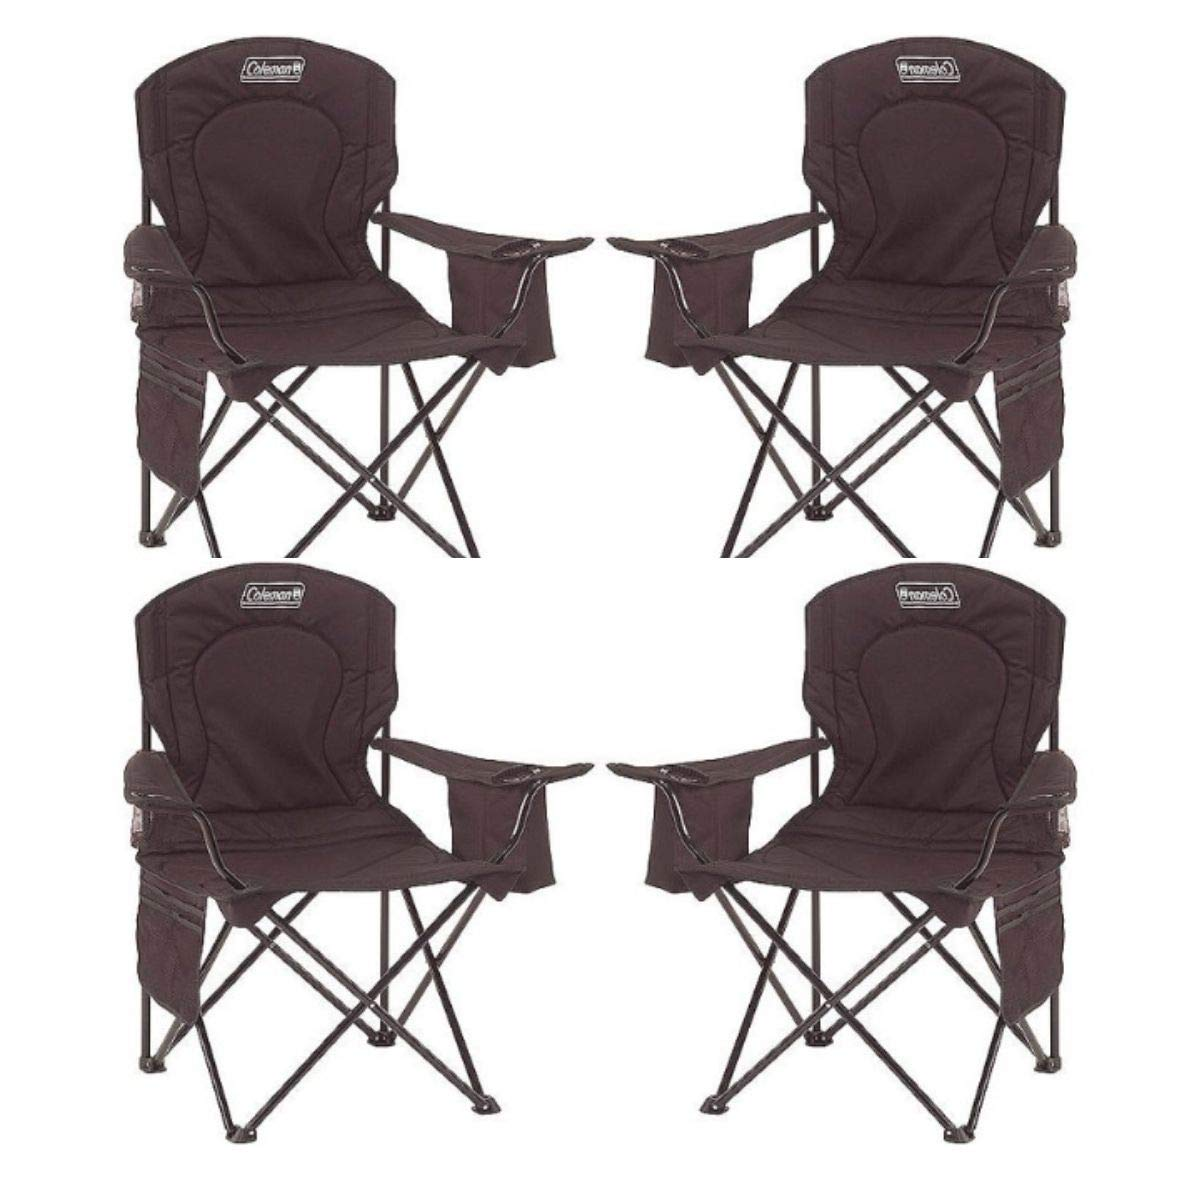 Coleman Oversized Quad Chair with Cooler Pouch (Black/Set of 4)